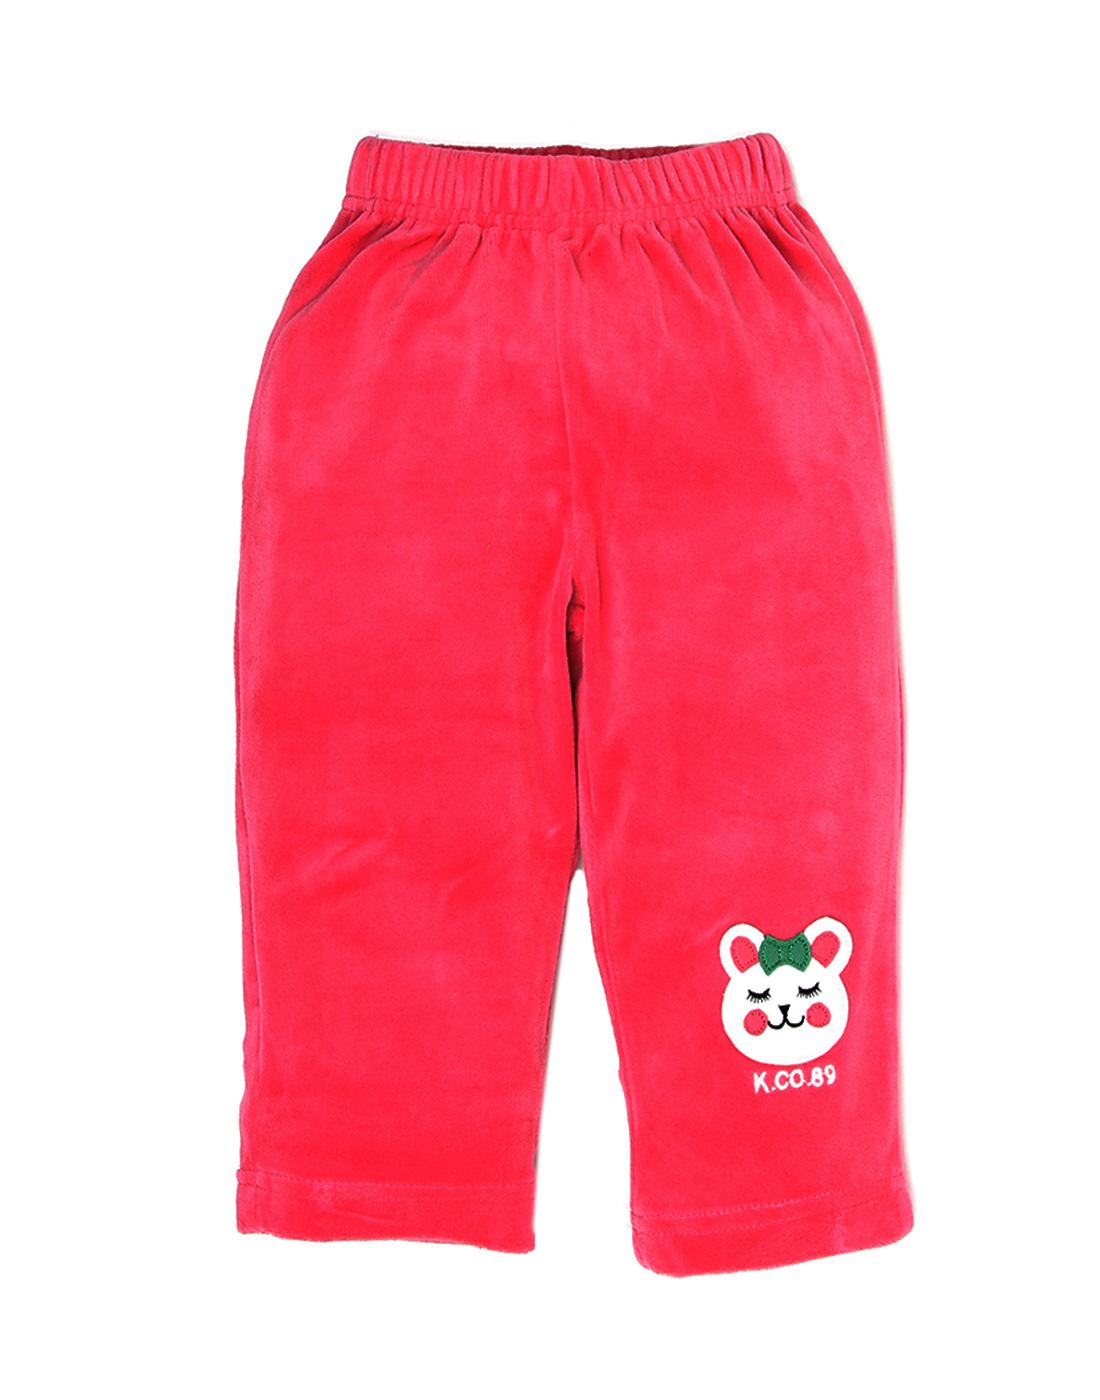 K.C.O 89 Girls Casual Solid  Pant